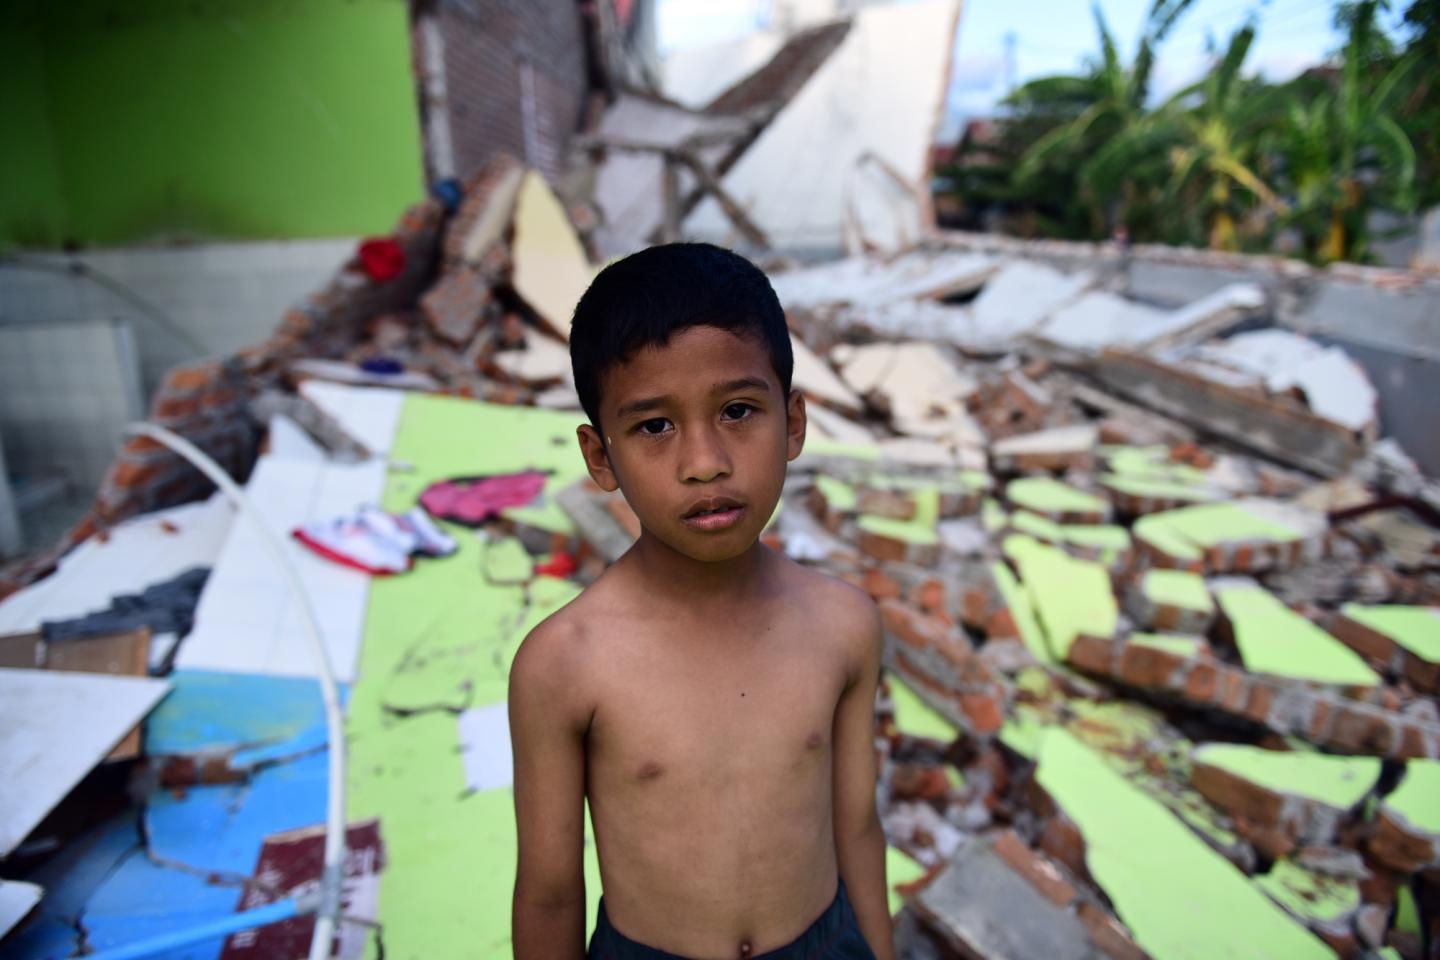 A boy stands among the ruins of a building destroyed by the recent tsunami in Palu, Indonesia.